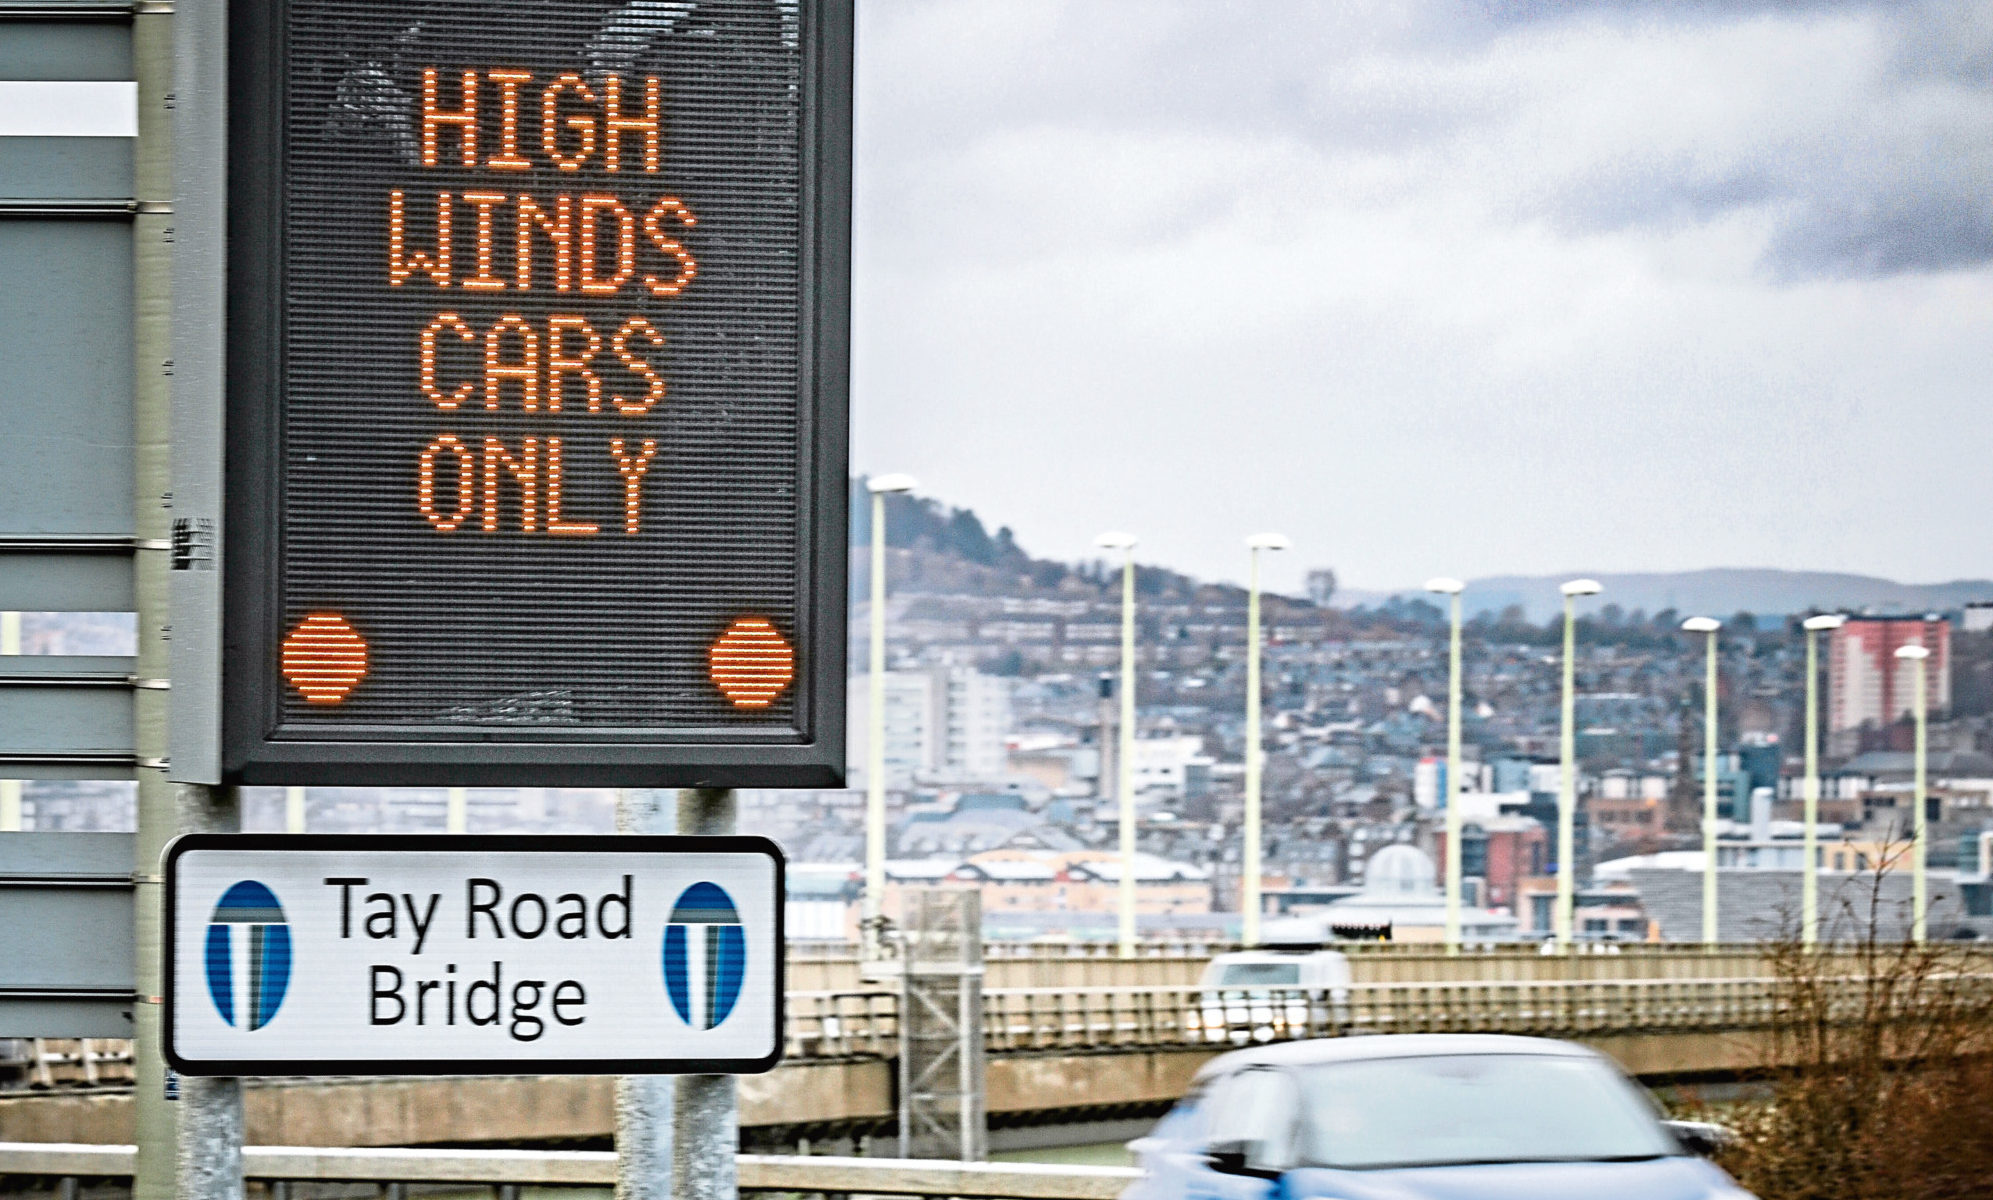 High Winds could limit traffic allowed on the Tay Road Bridge